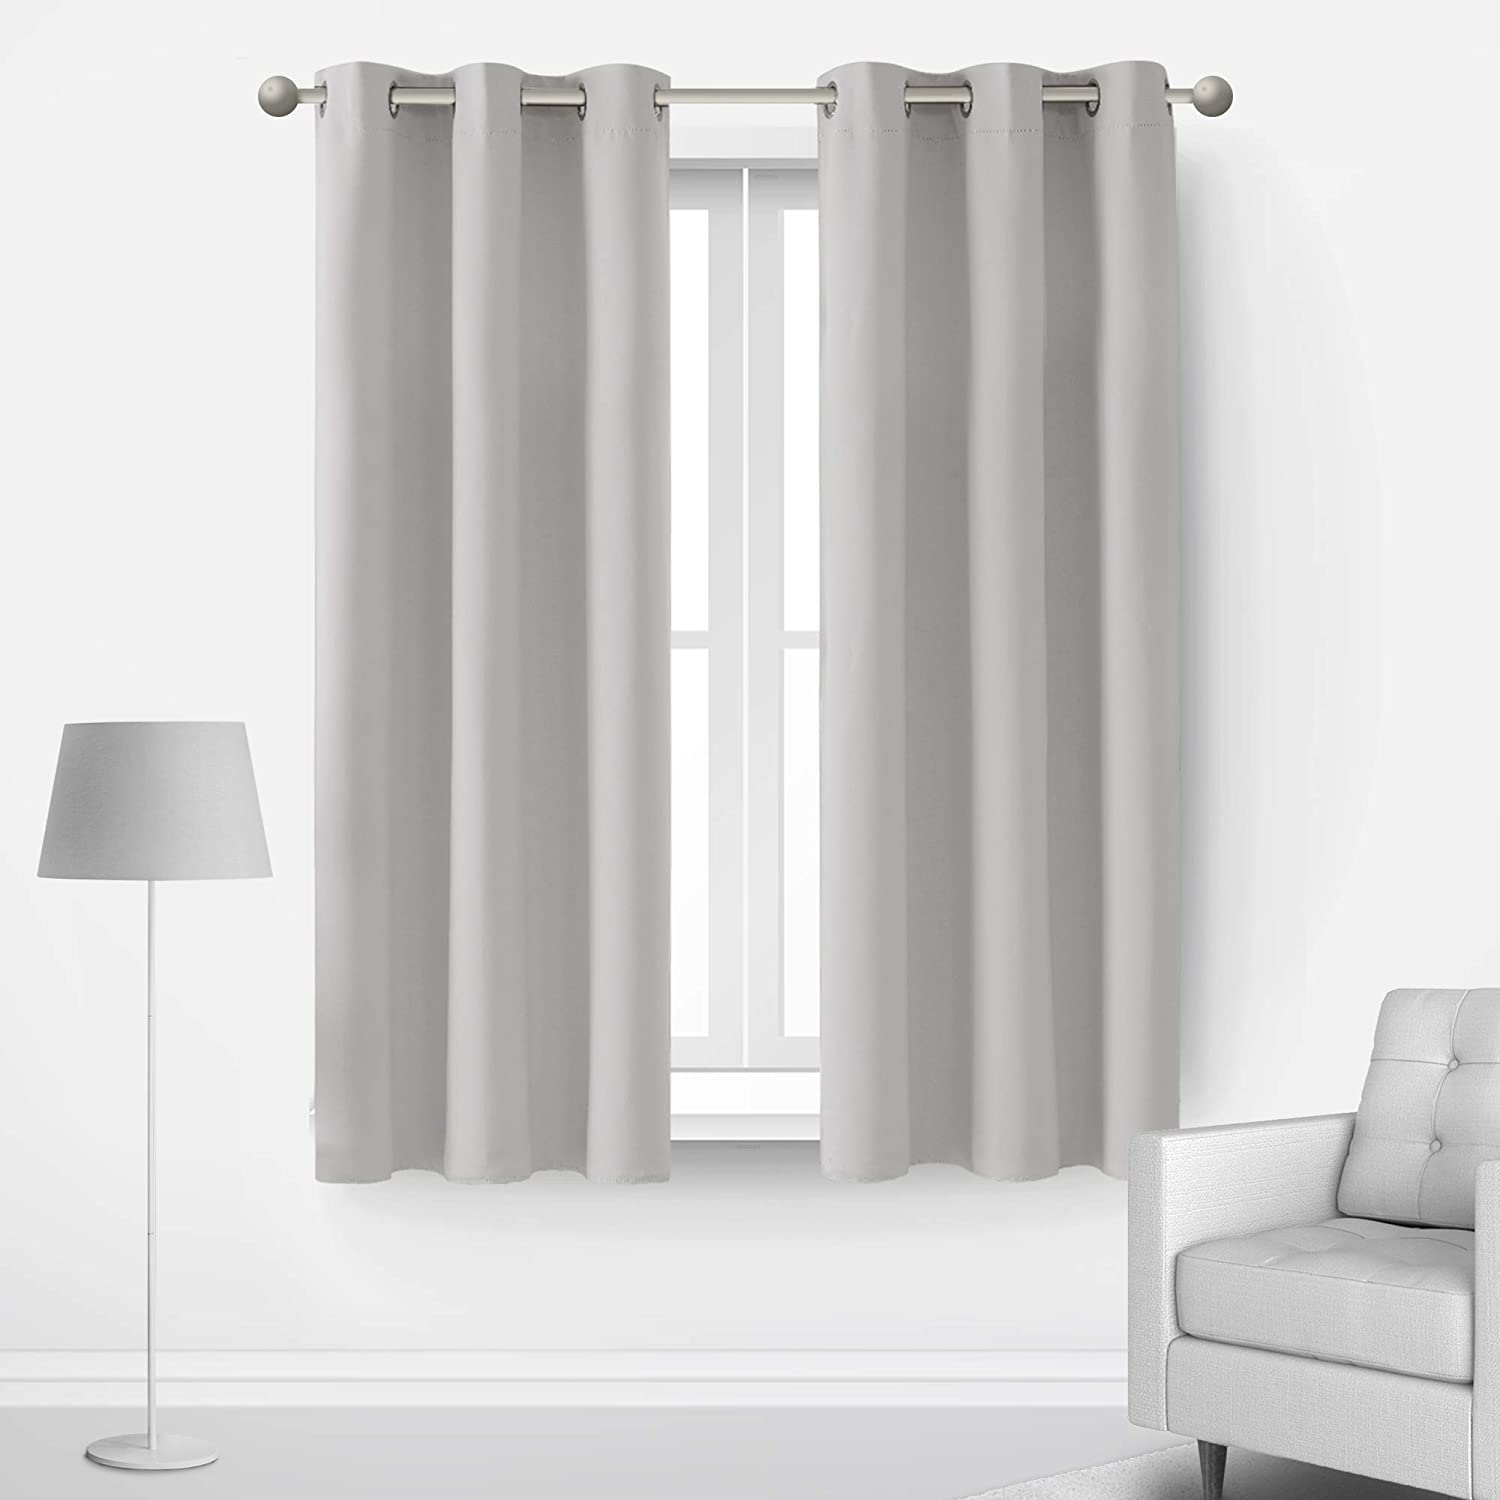 Deconovo Curtains Thermal Insulated Blackout Curtains for Bedroom Sets of 2 Grommet Top Curtains Greyish White 42X63 Inch